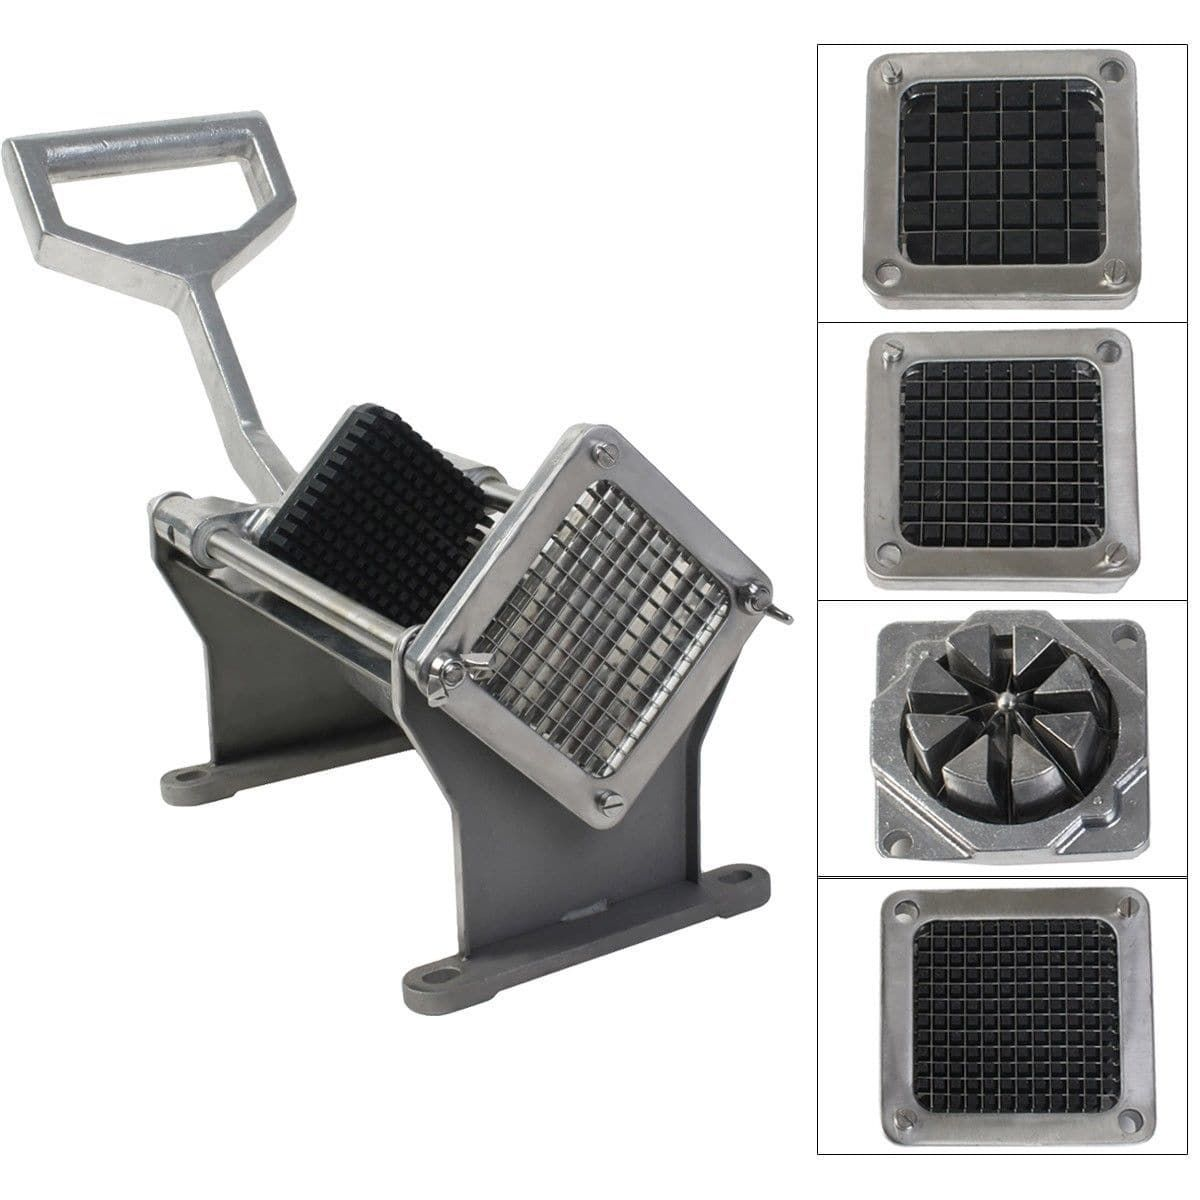 Costway Potato French Fry Fruit Vegetable Cutter Slicer Commercial Quality  W 4 Blades, Silver Stainless